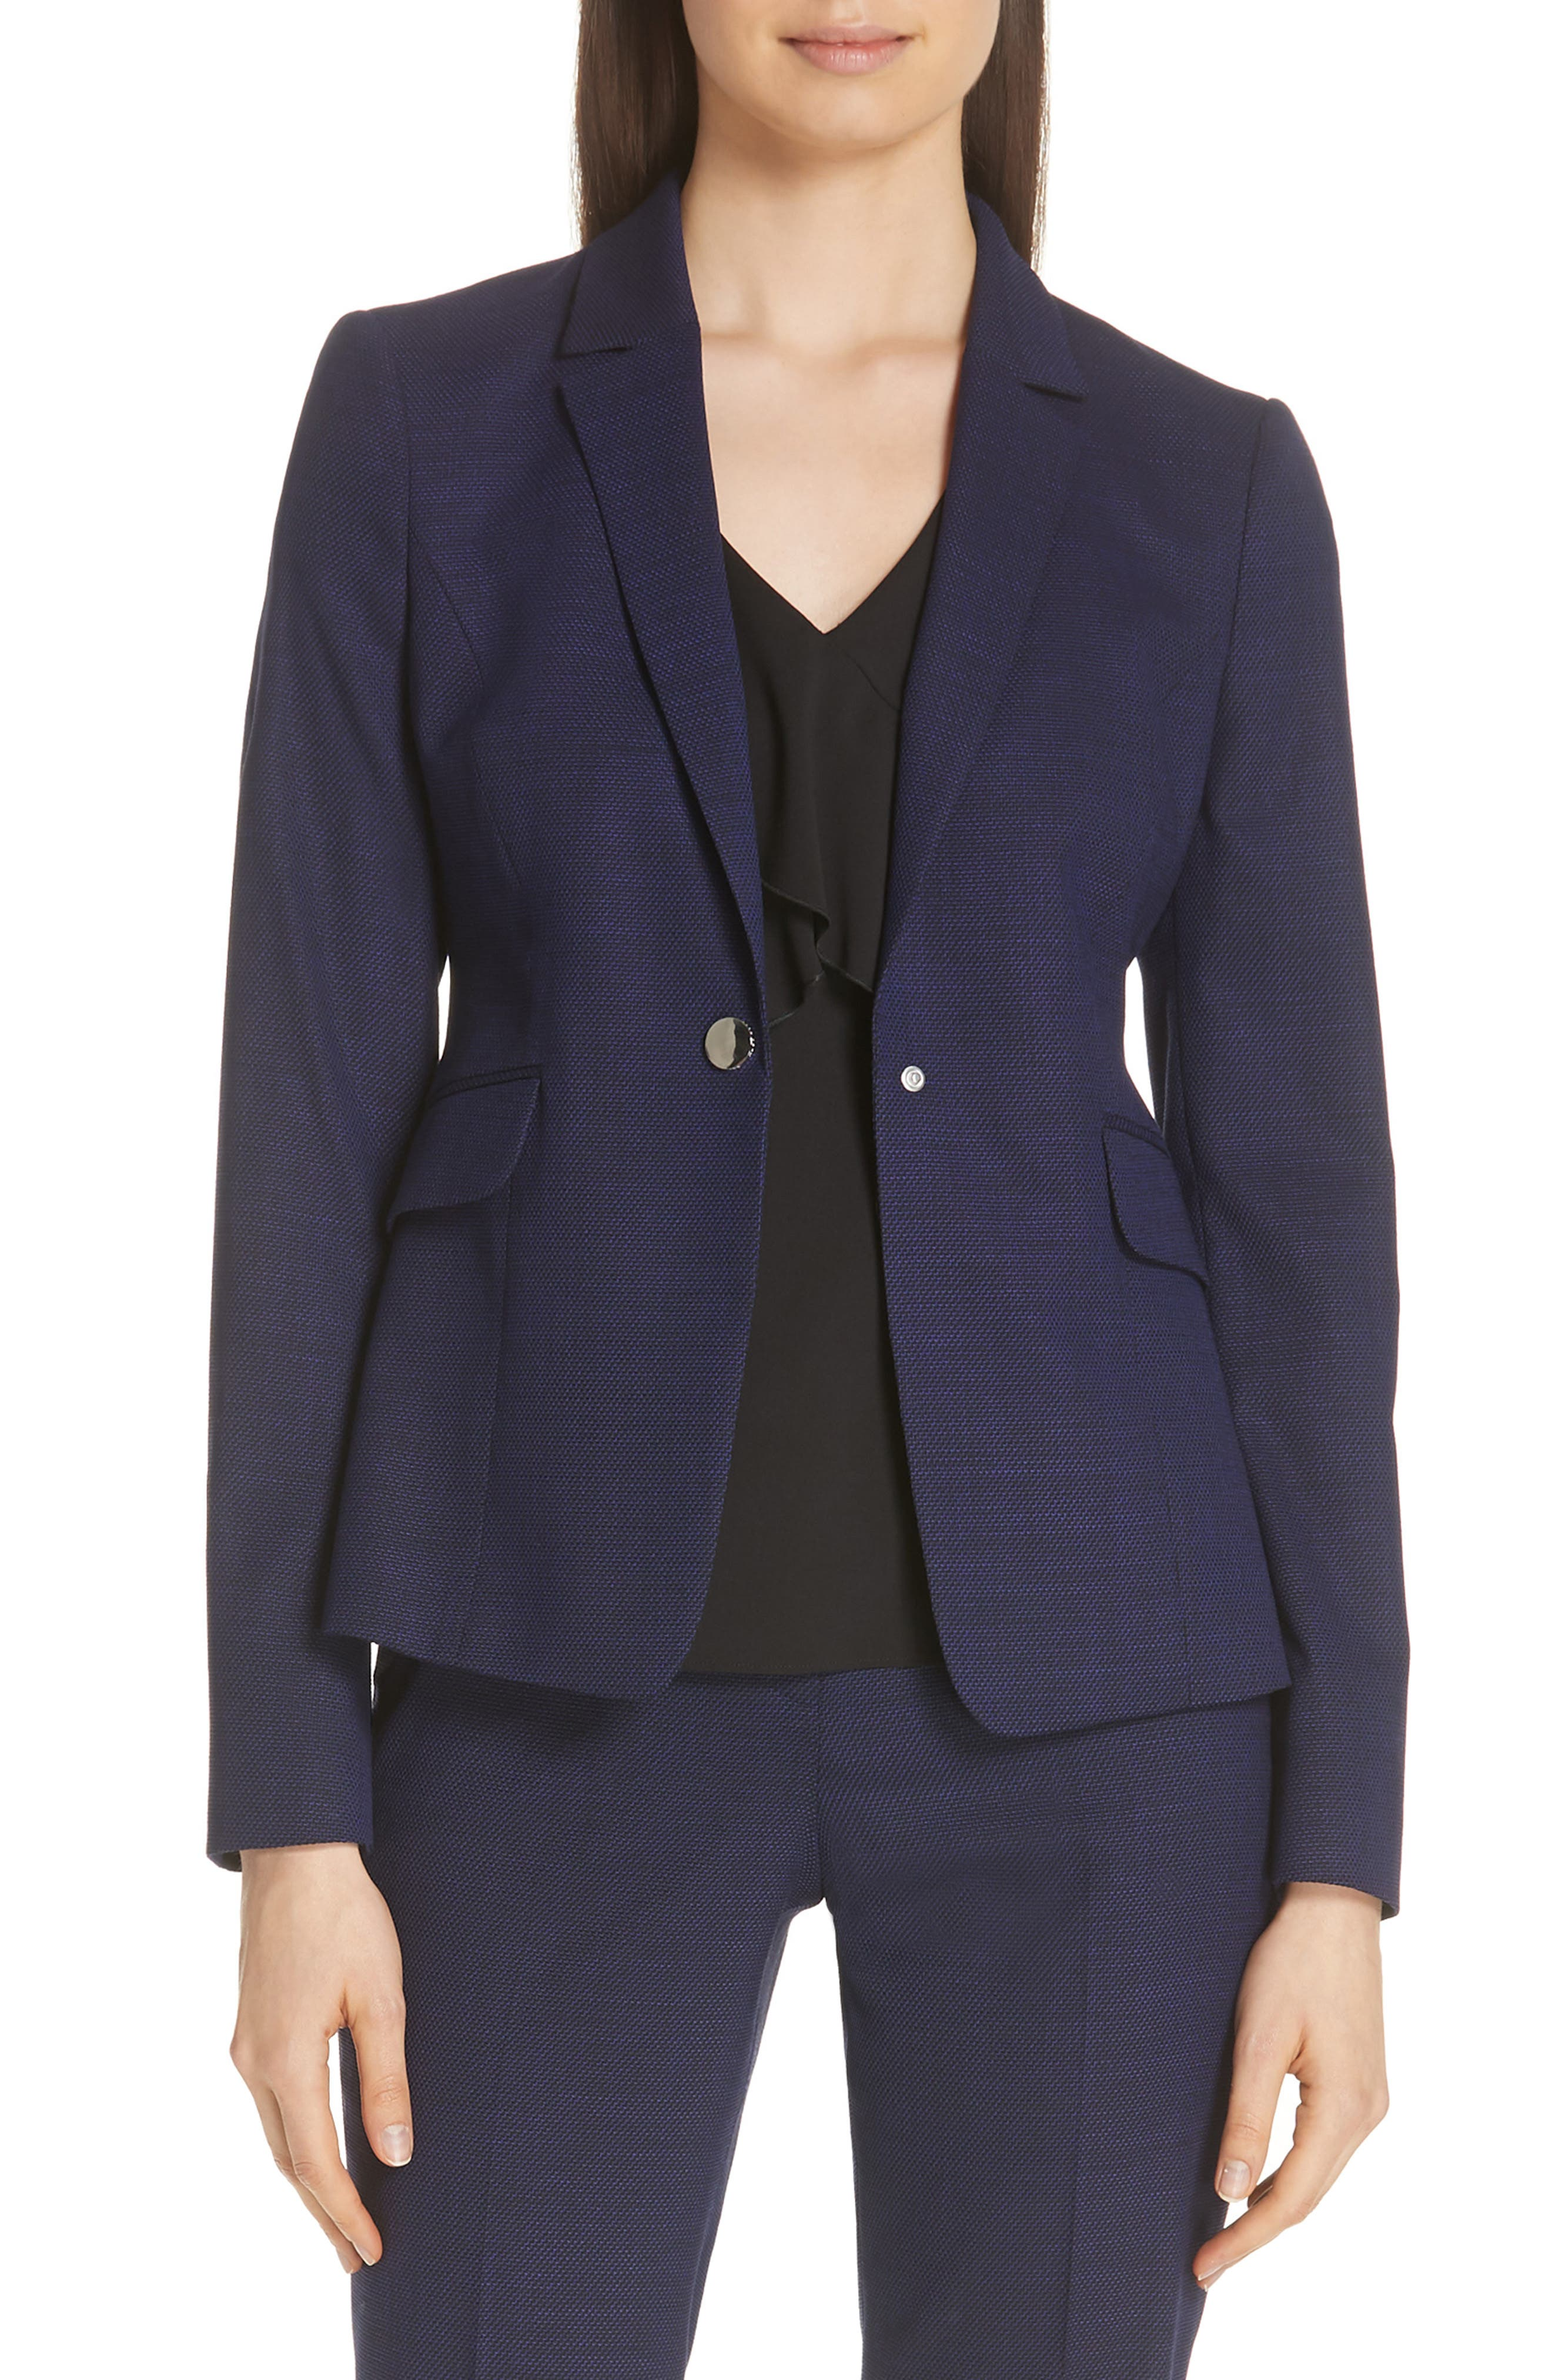 Jibalena Mini Glencheck Suit Jacket,                             Main thumbnail 1, color,                             Deep Lilac Fantasy